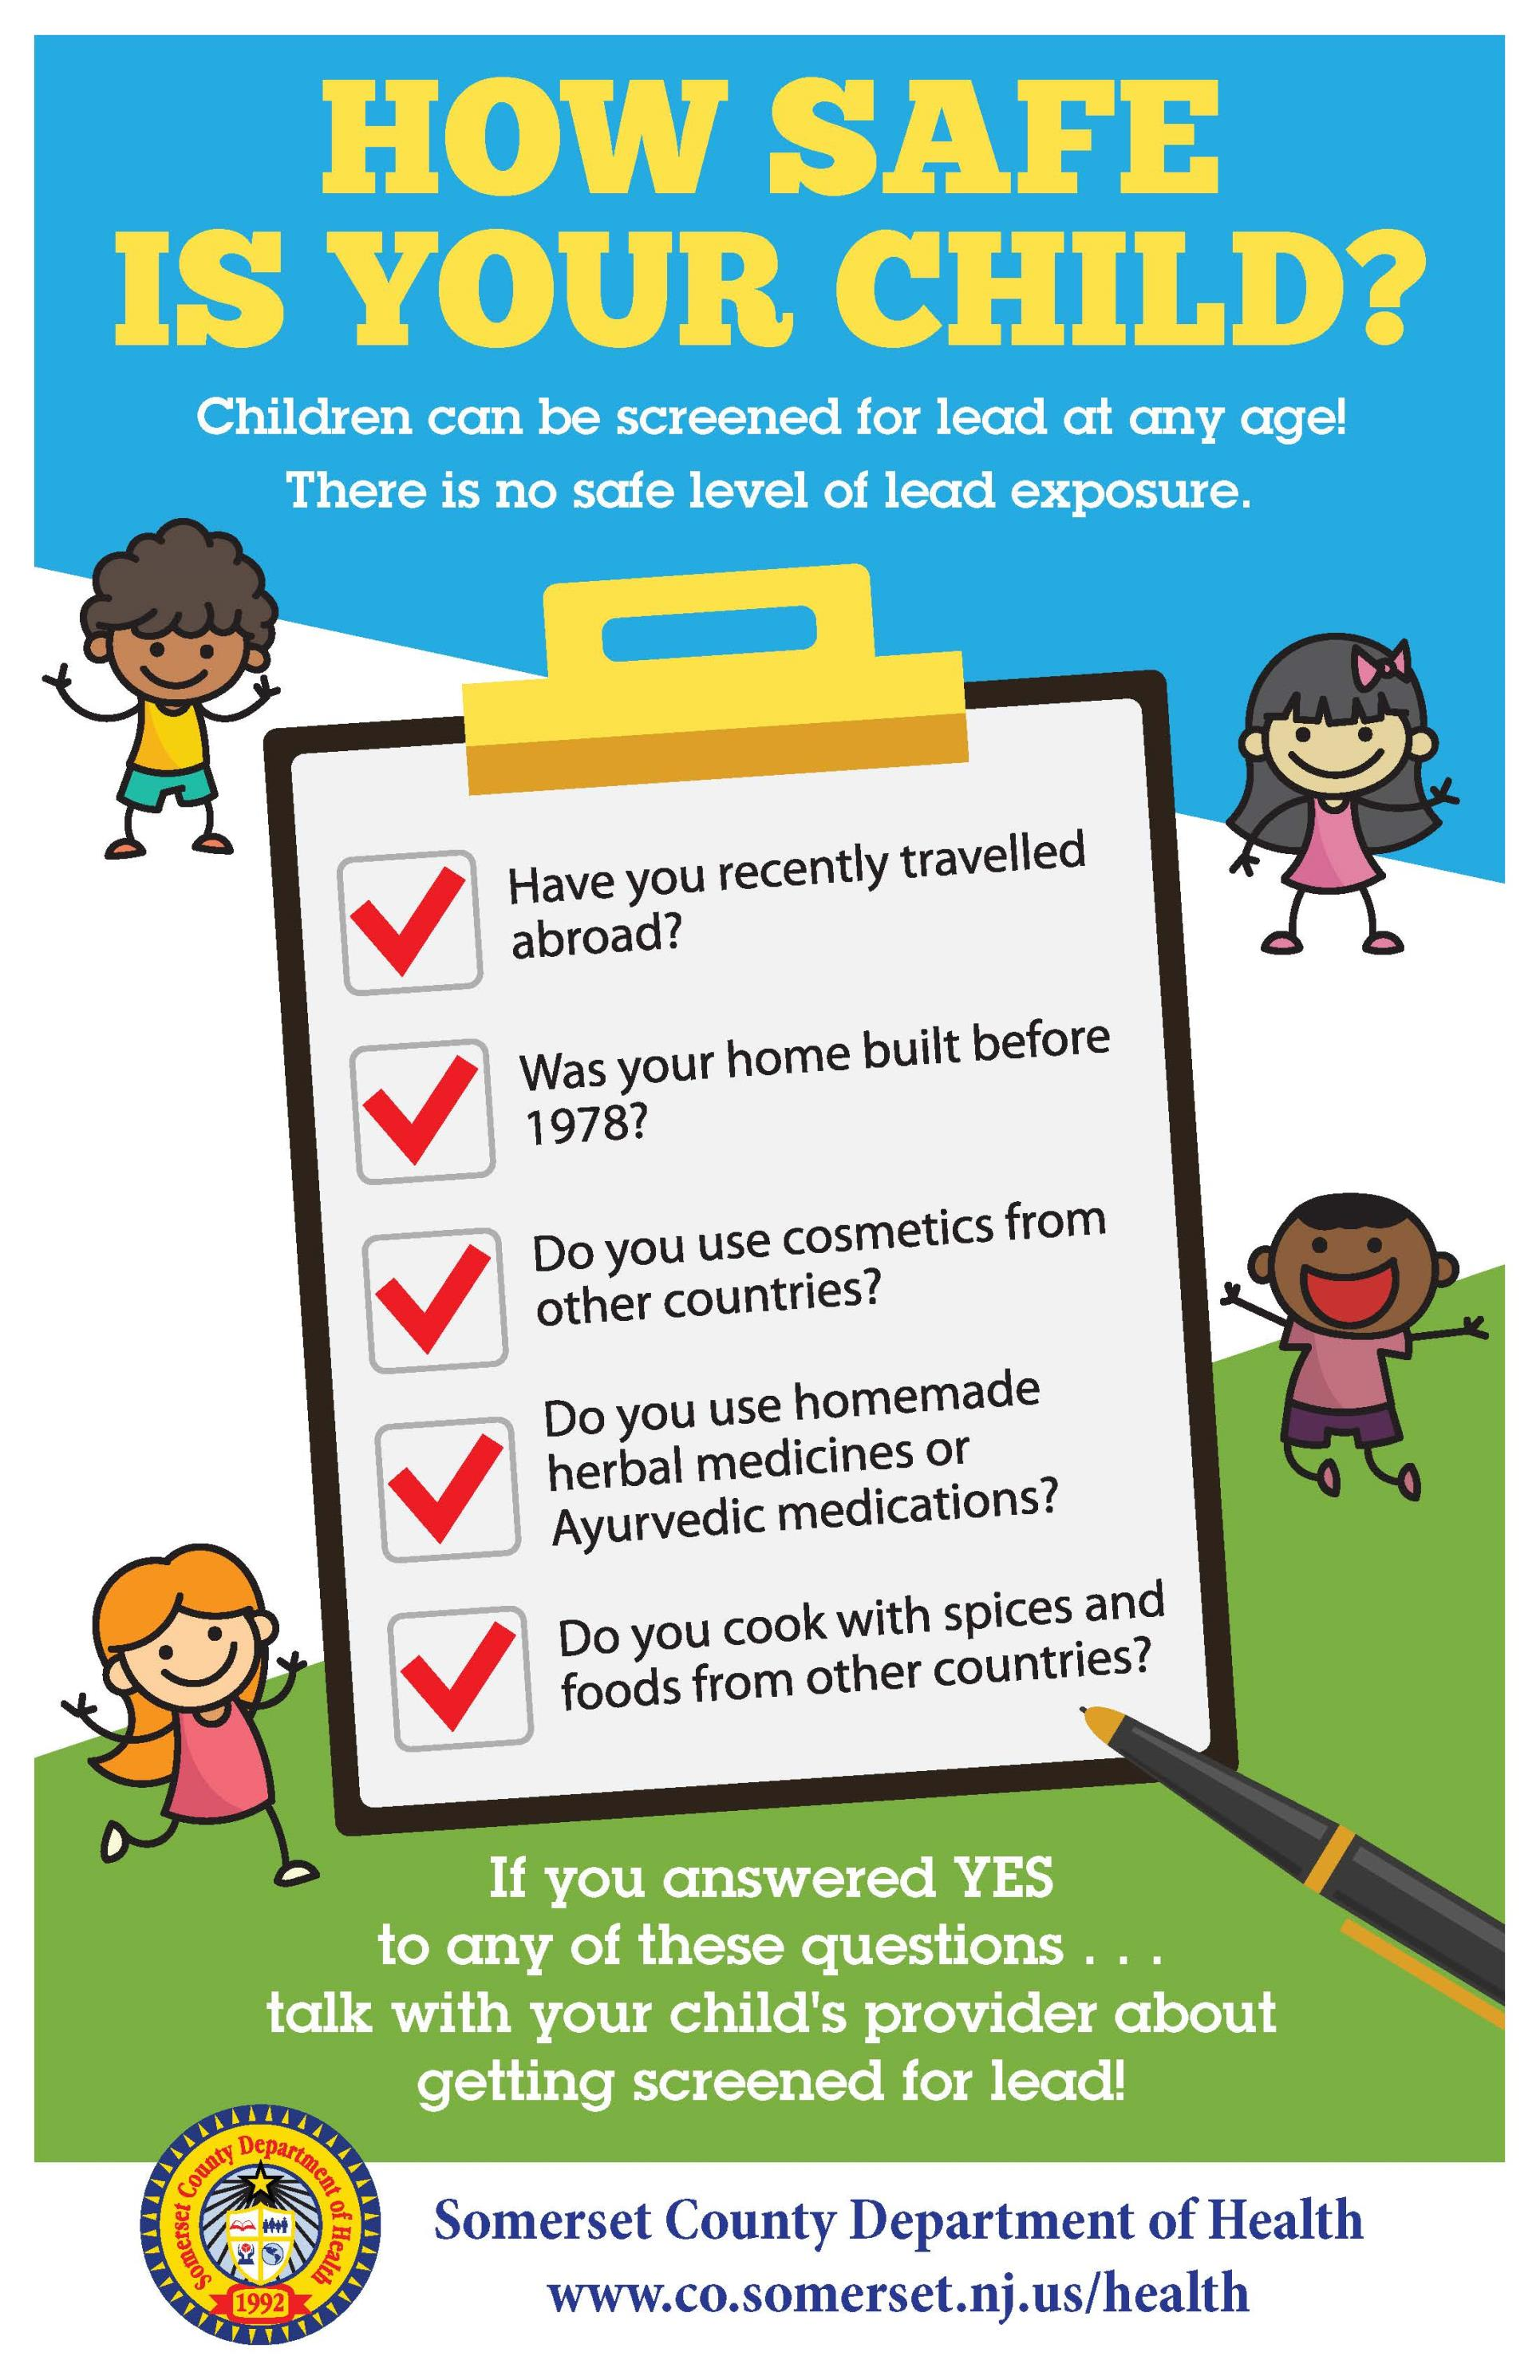 SCDOH Lead Poisoning Checklist Poster - Final